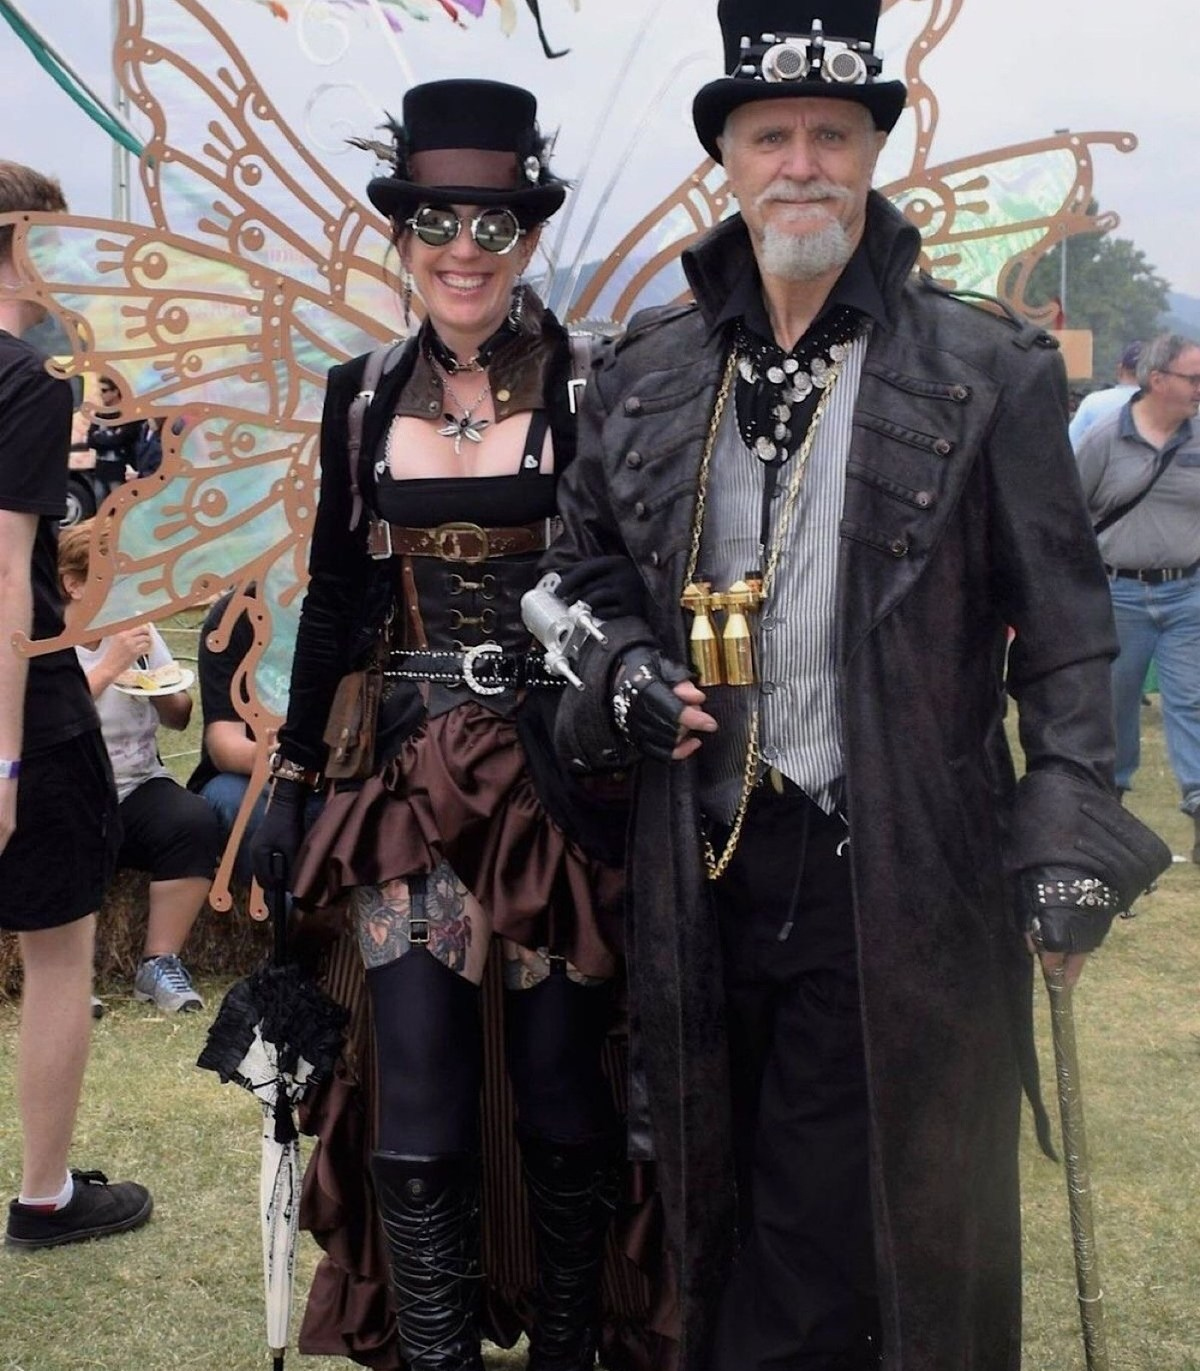 steampunk couple in typical attire